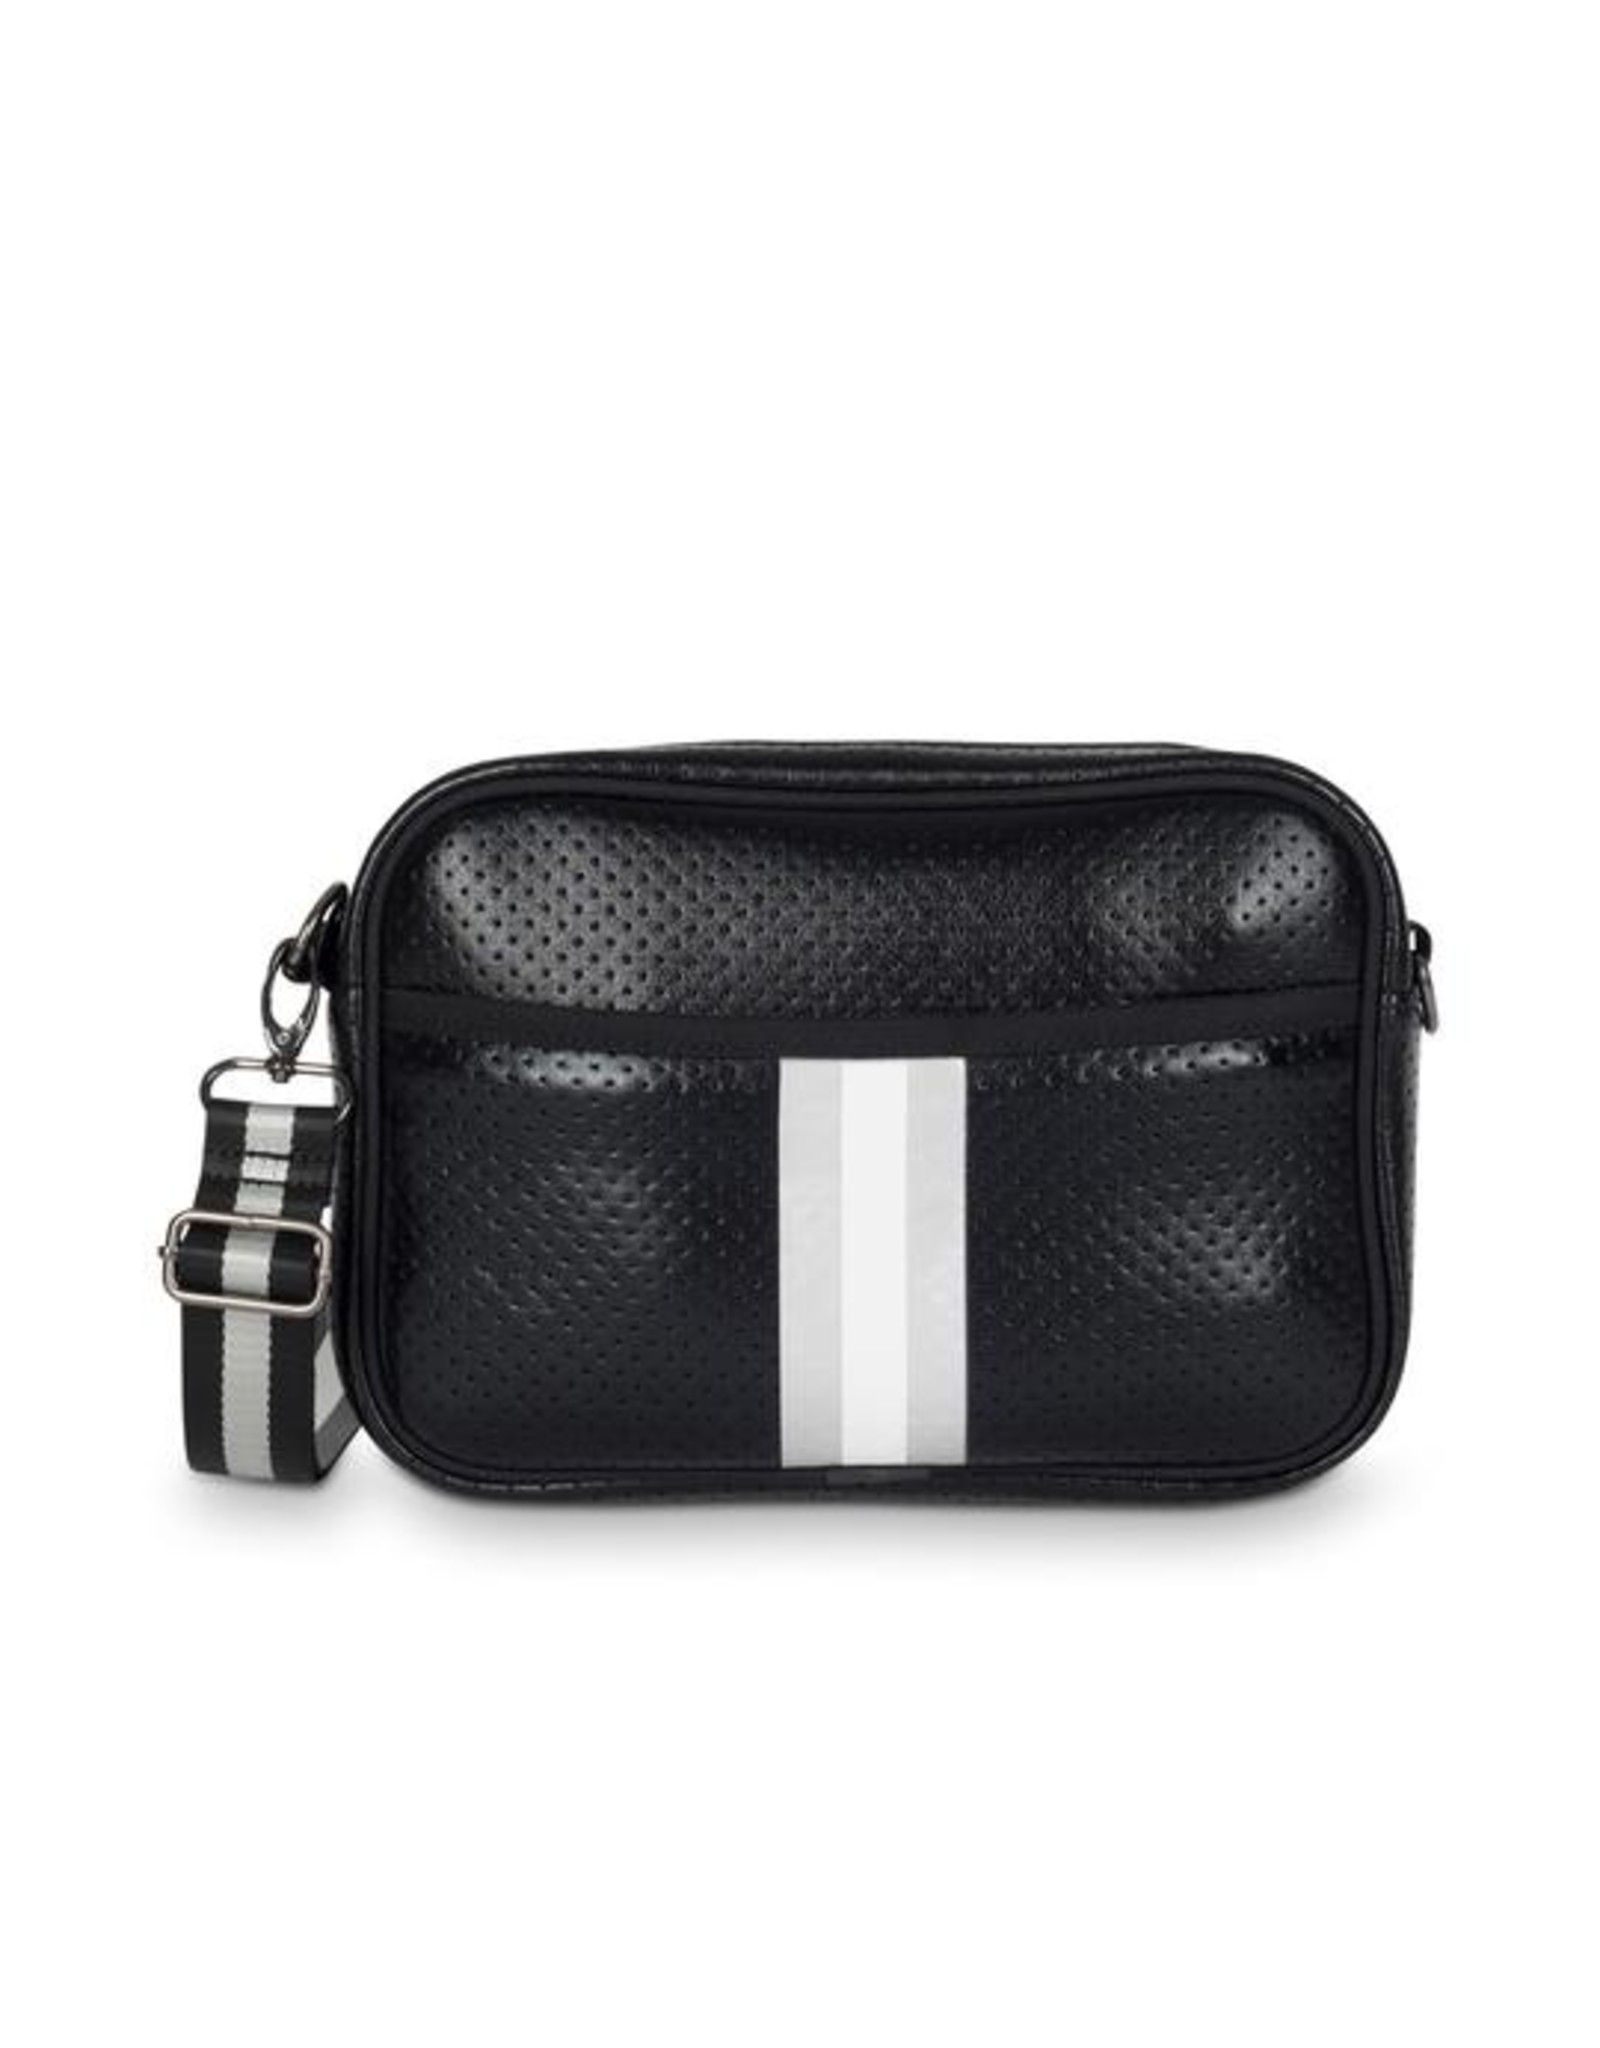 Black with silver and white crossbody